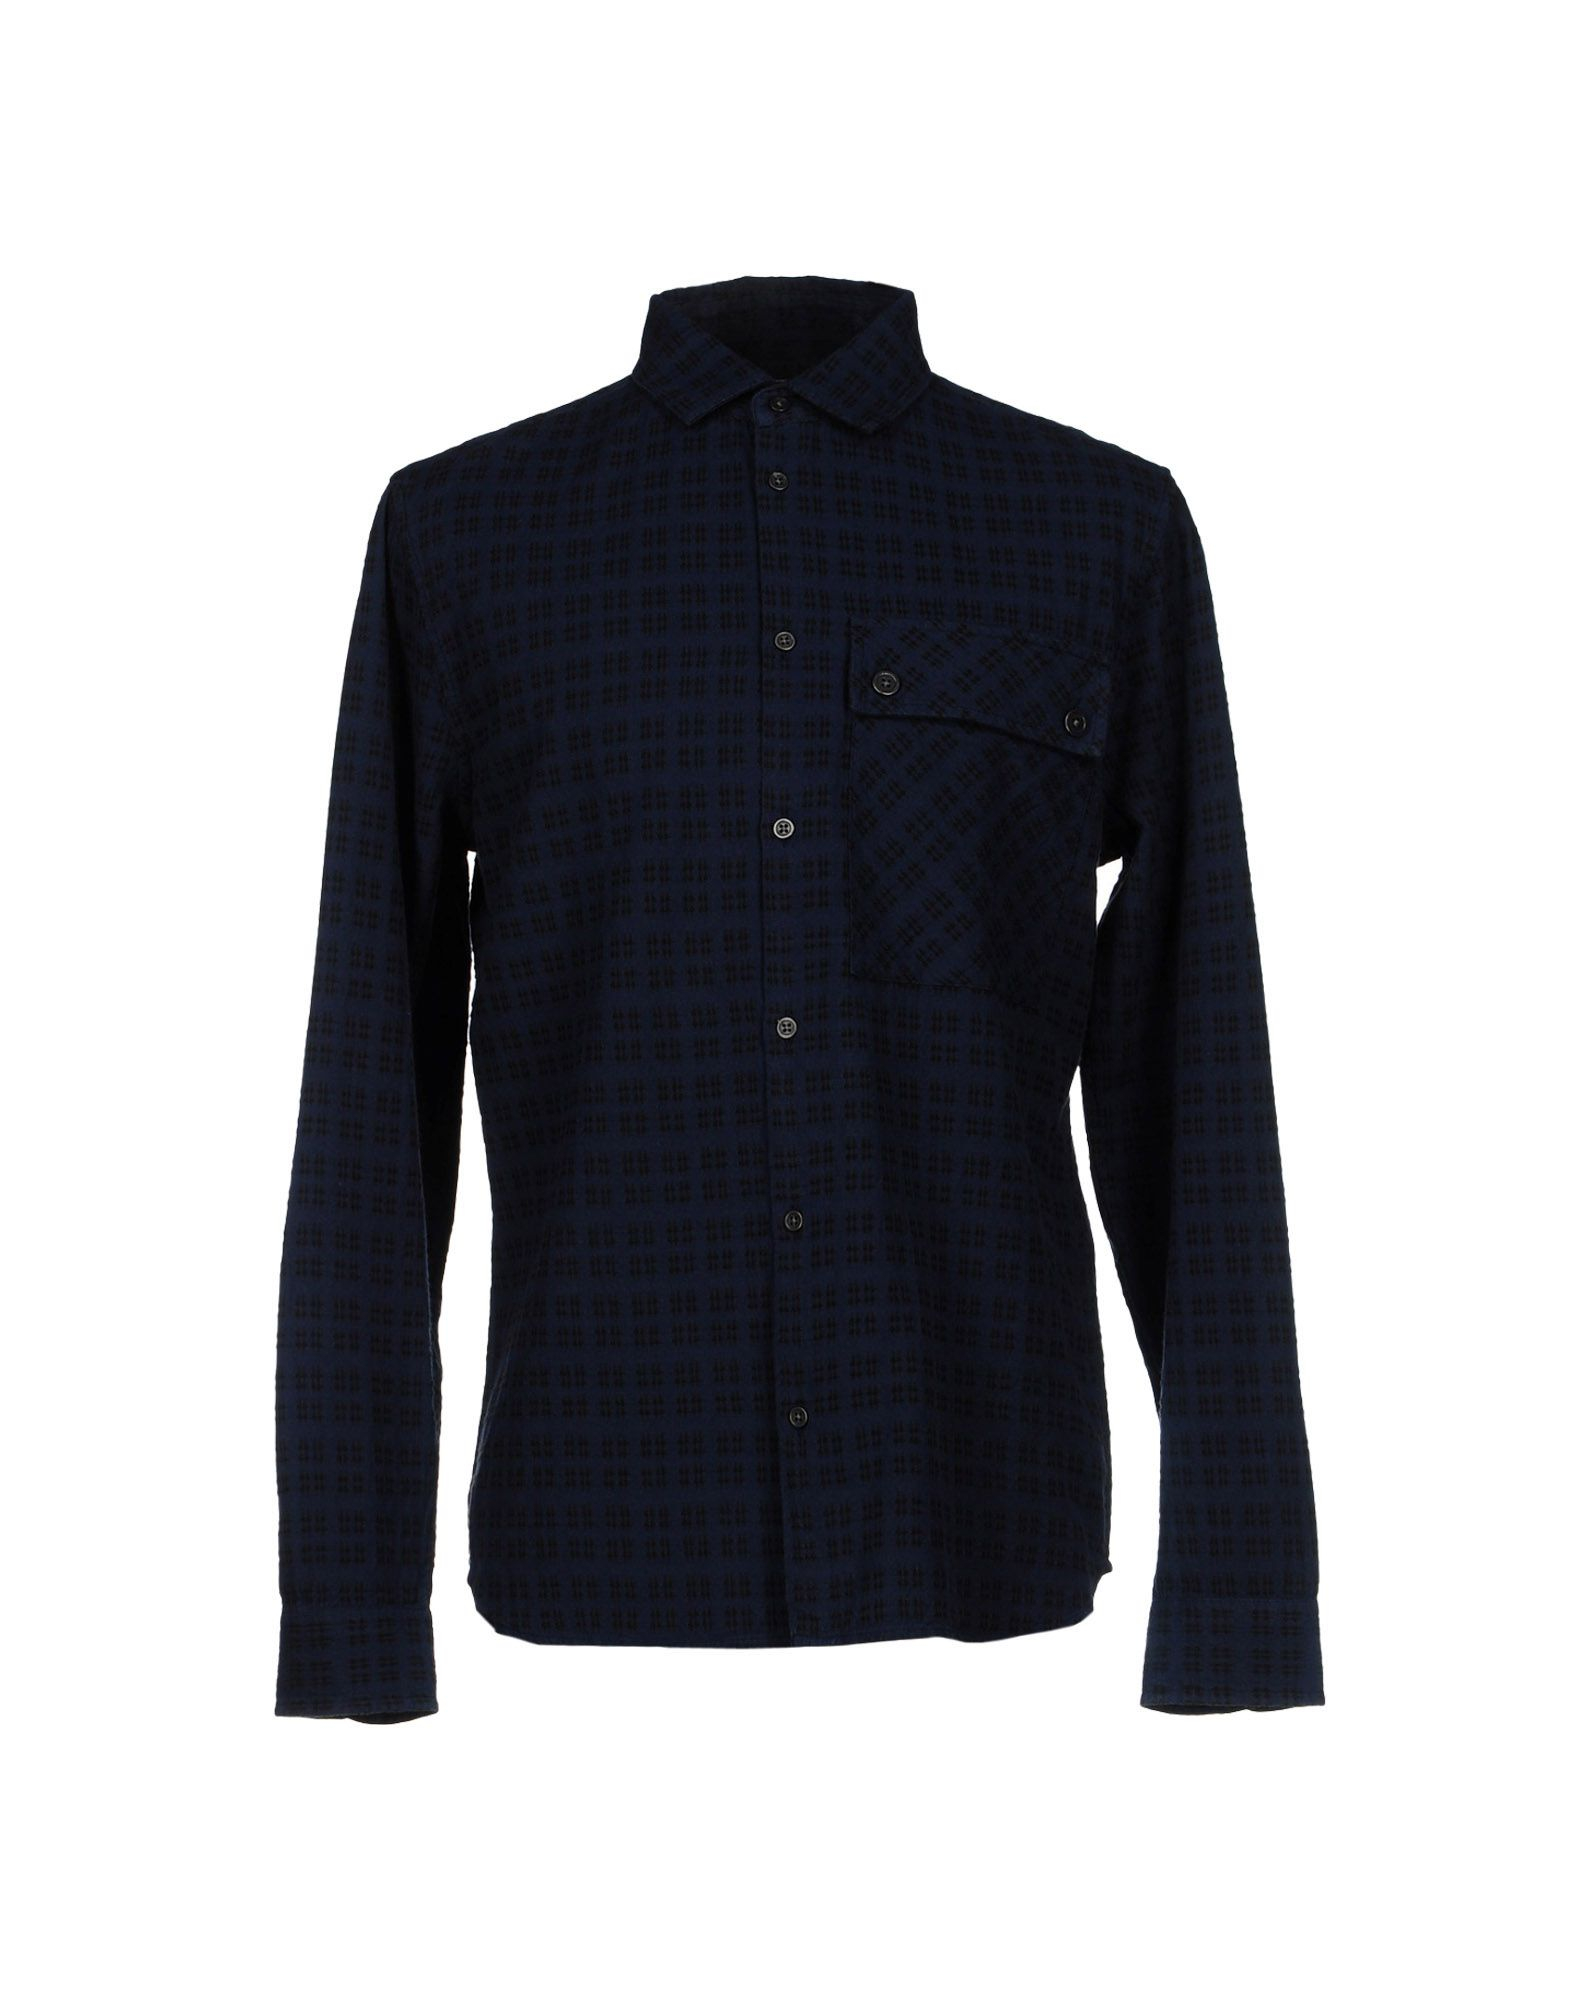 Marc by marc jacobs Shirt in Blue for Men | Lyst